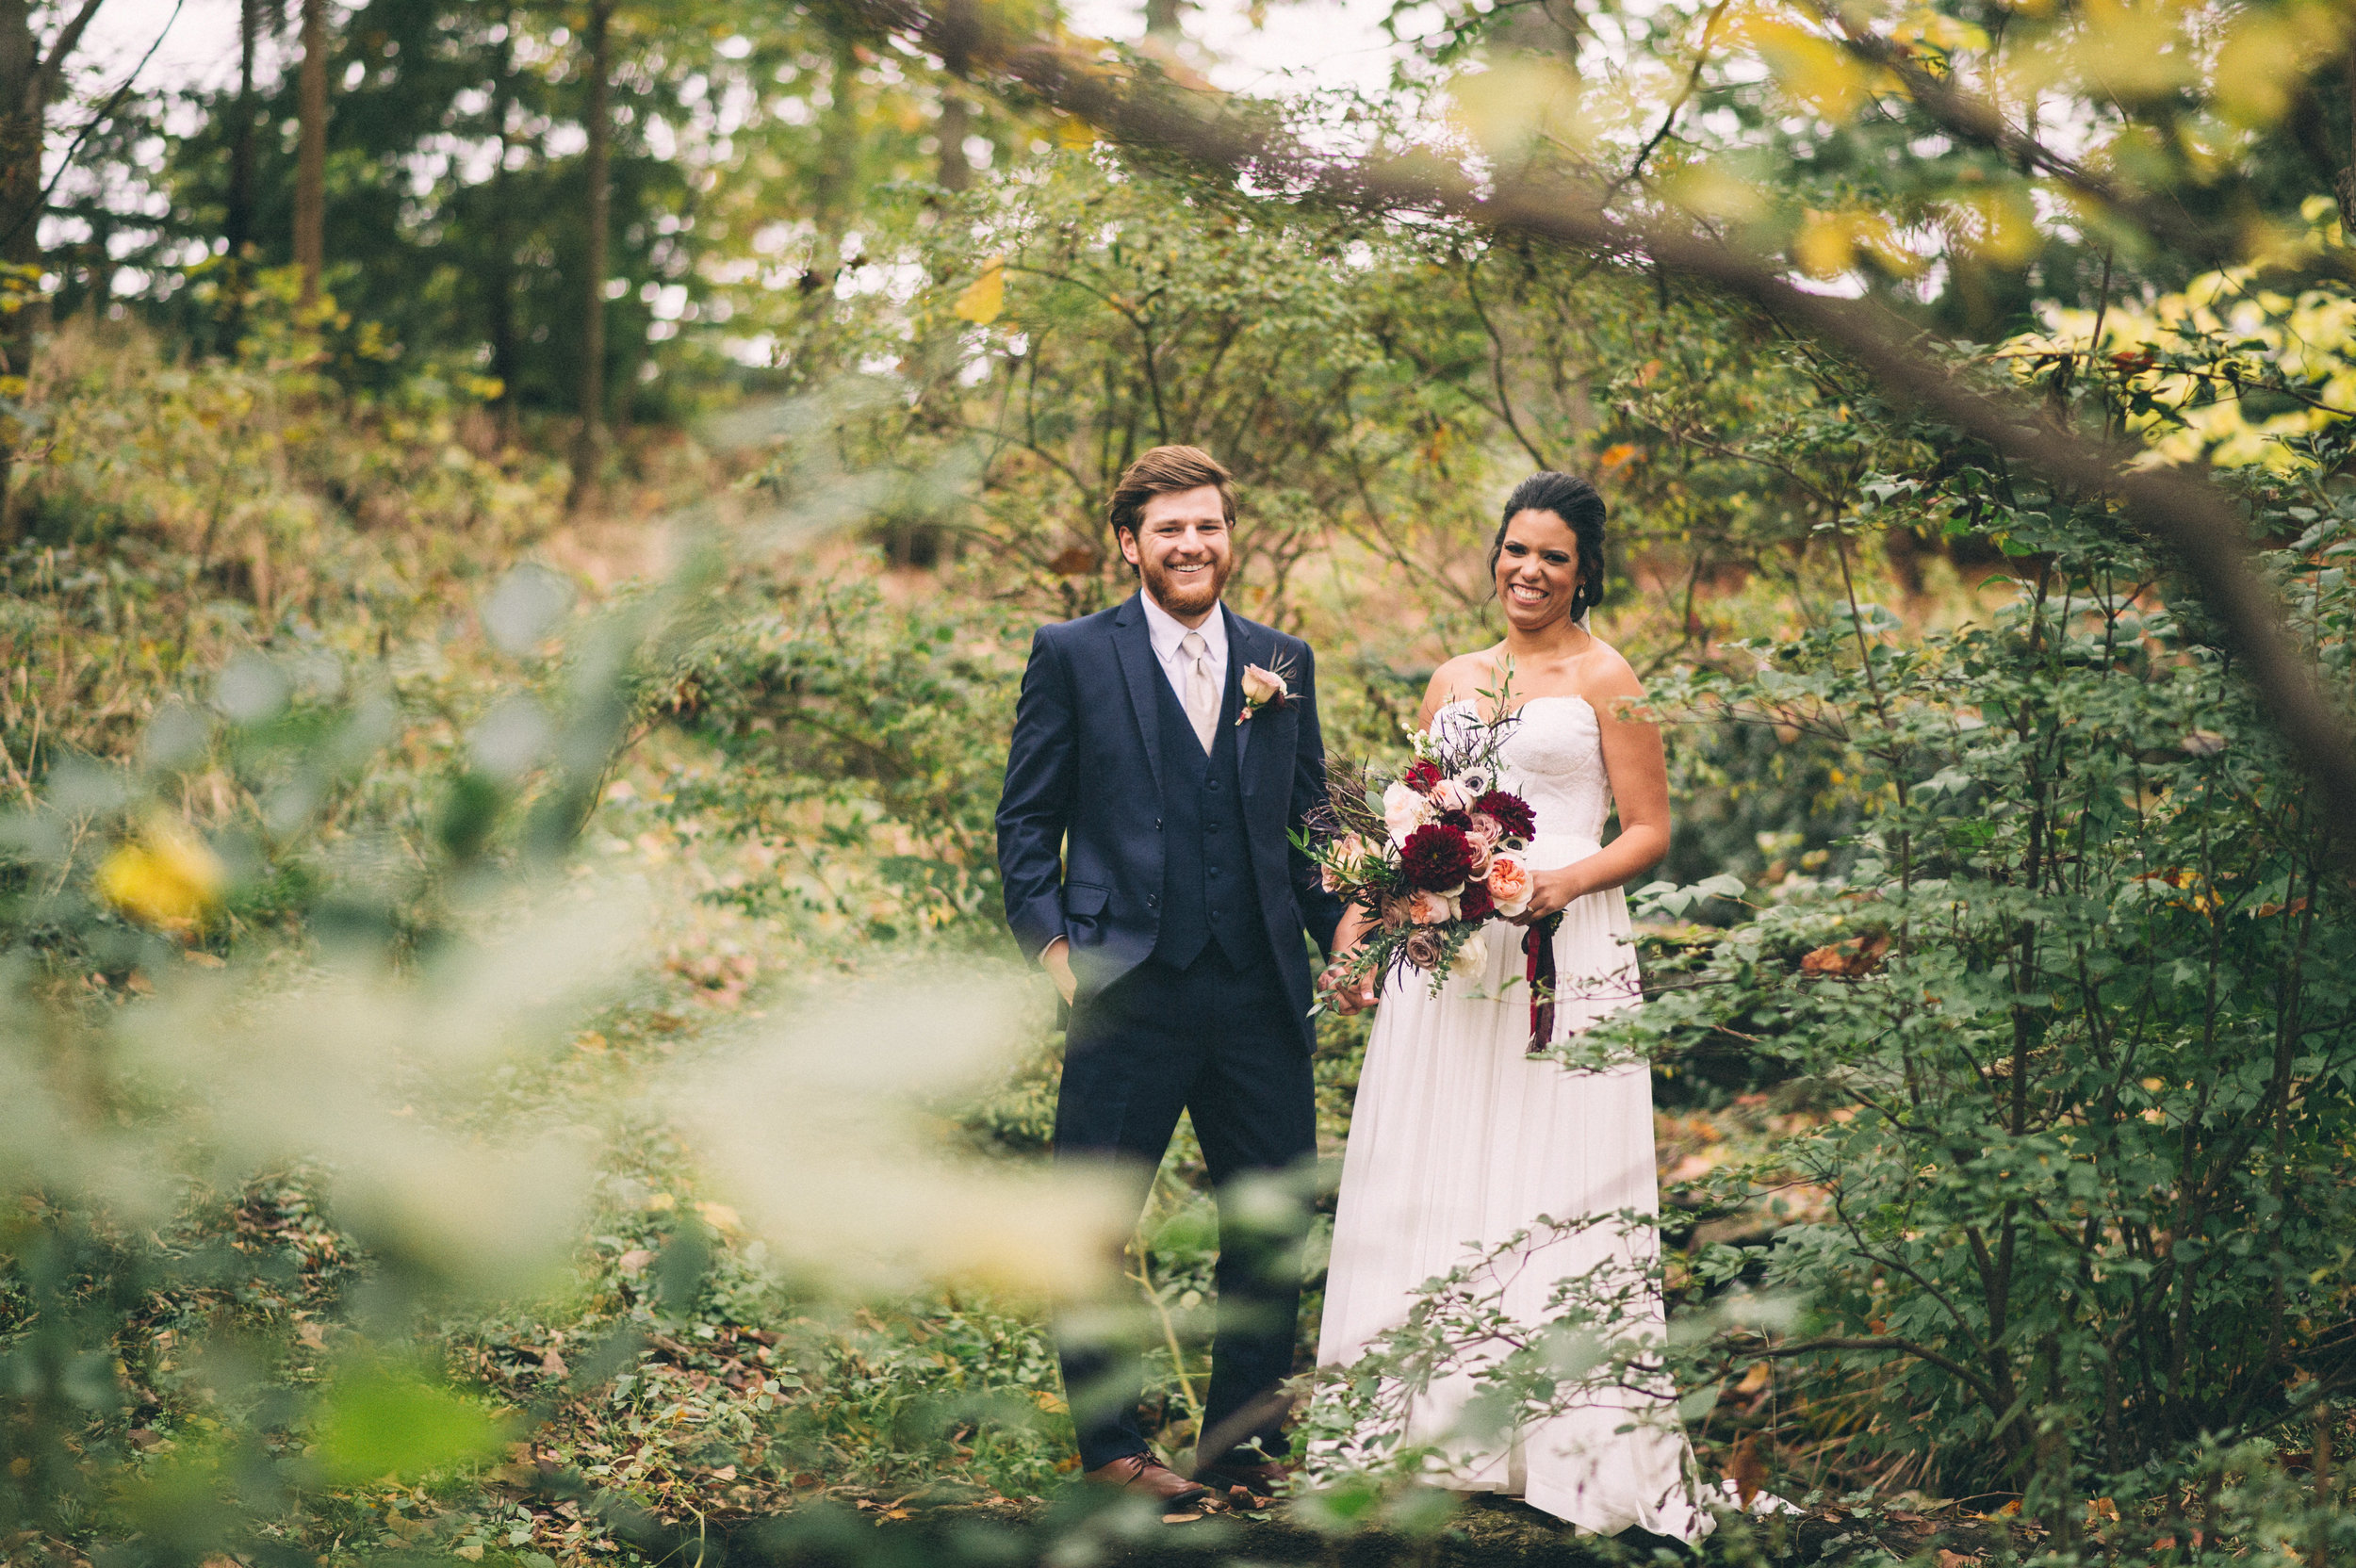 Micaha & Austin // Cozy Autumn Wedding at Springhouse Gardens // Lexington, Kentucky // Wedding Photography // Couple's Portraits